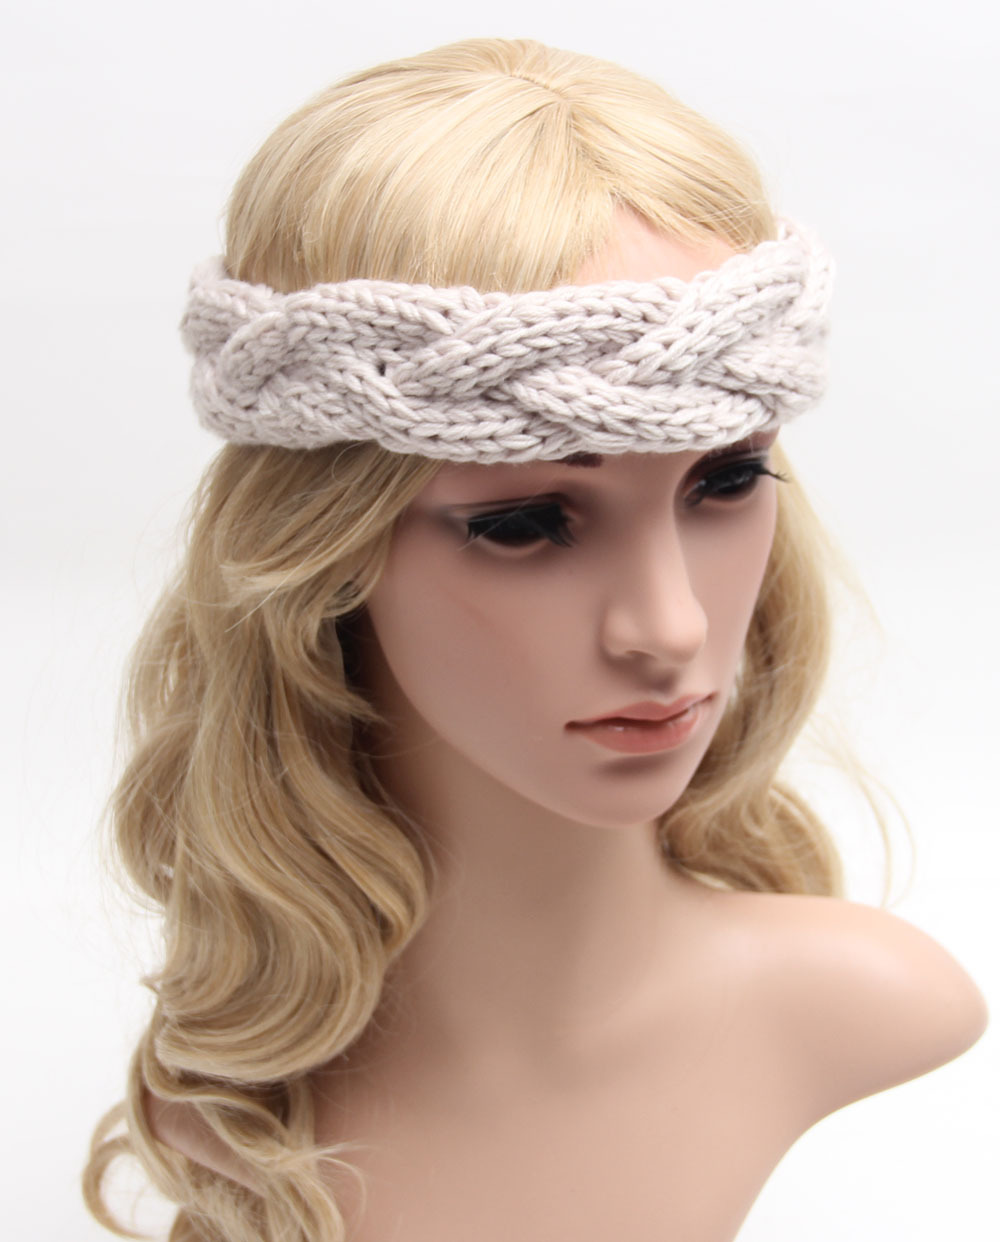 Find the best selection of cheap winter knit headbands wholesale in bulk here at metools.ml Including knit headband free and winter knit headbands at wholesale prices from winter knit headbands wholesale manufacturers. Source discount and high quality products in hundreds of categories wholesale direct from China.